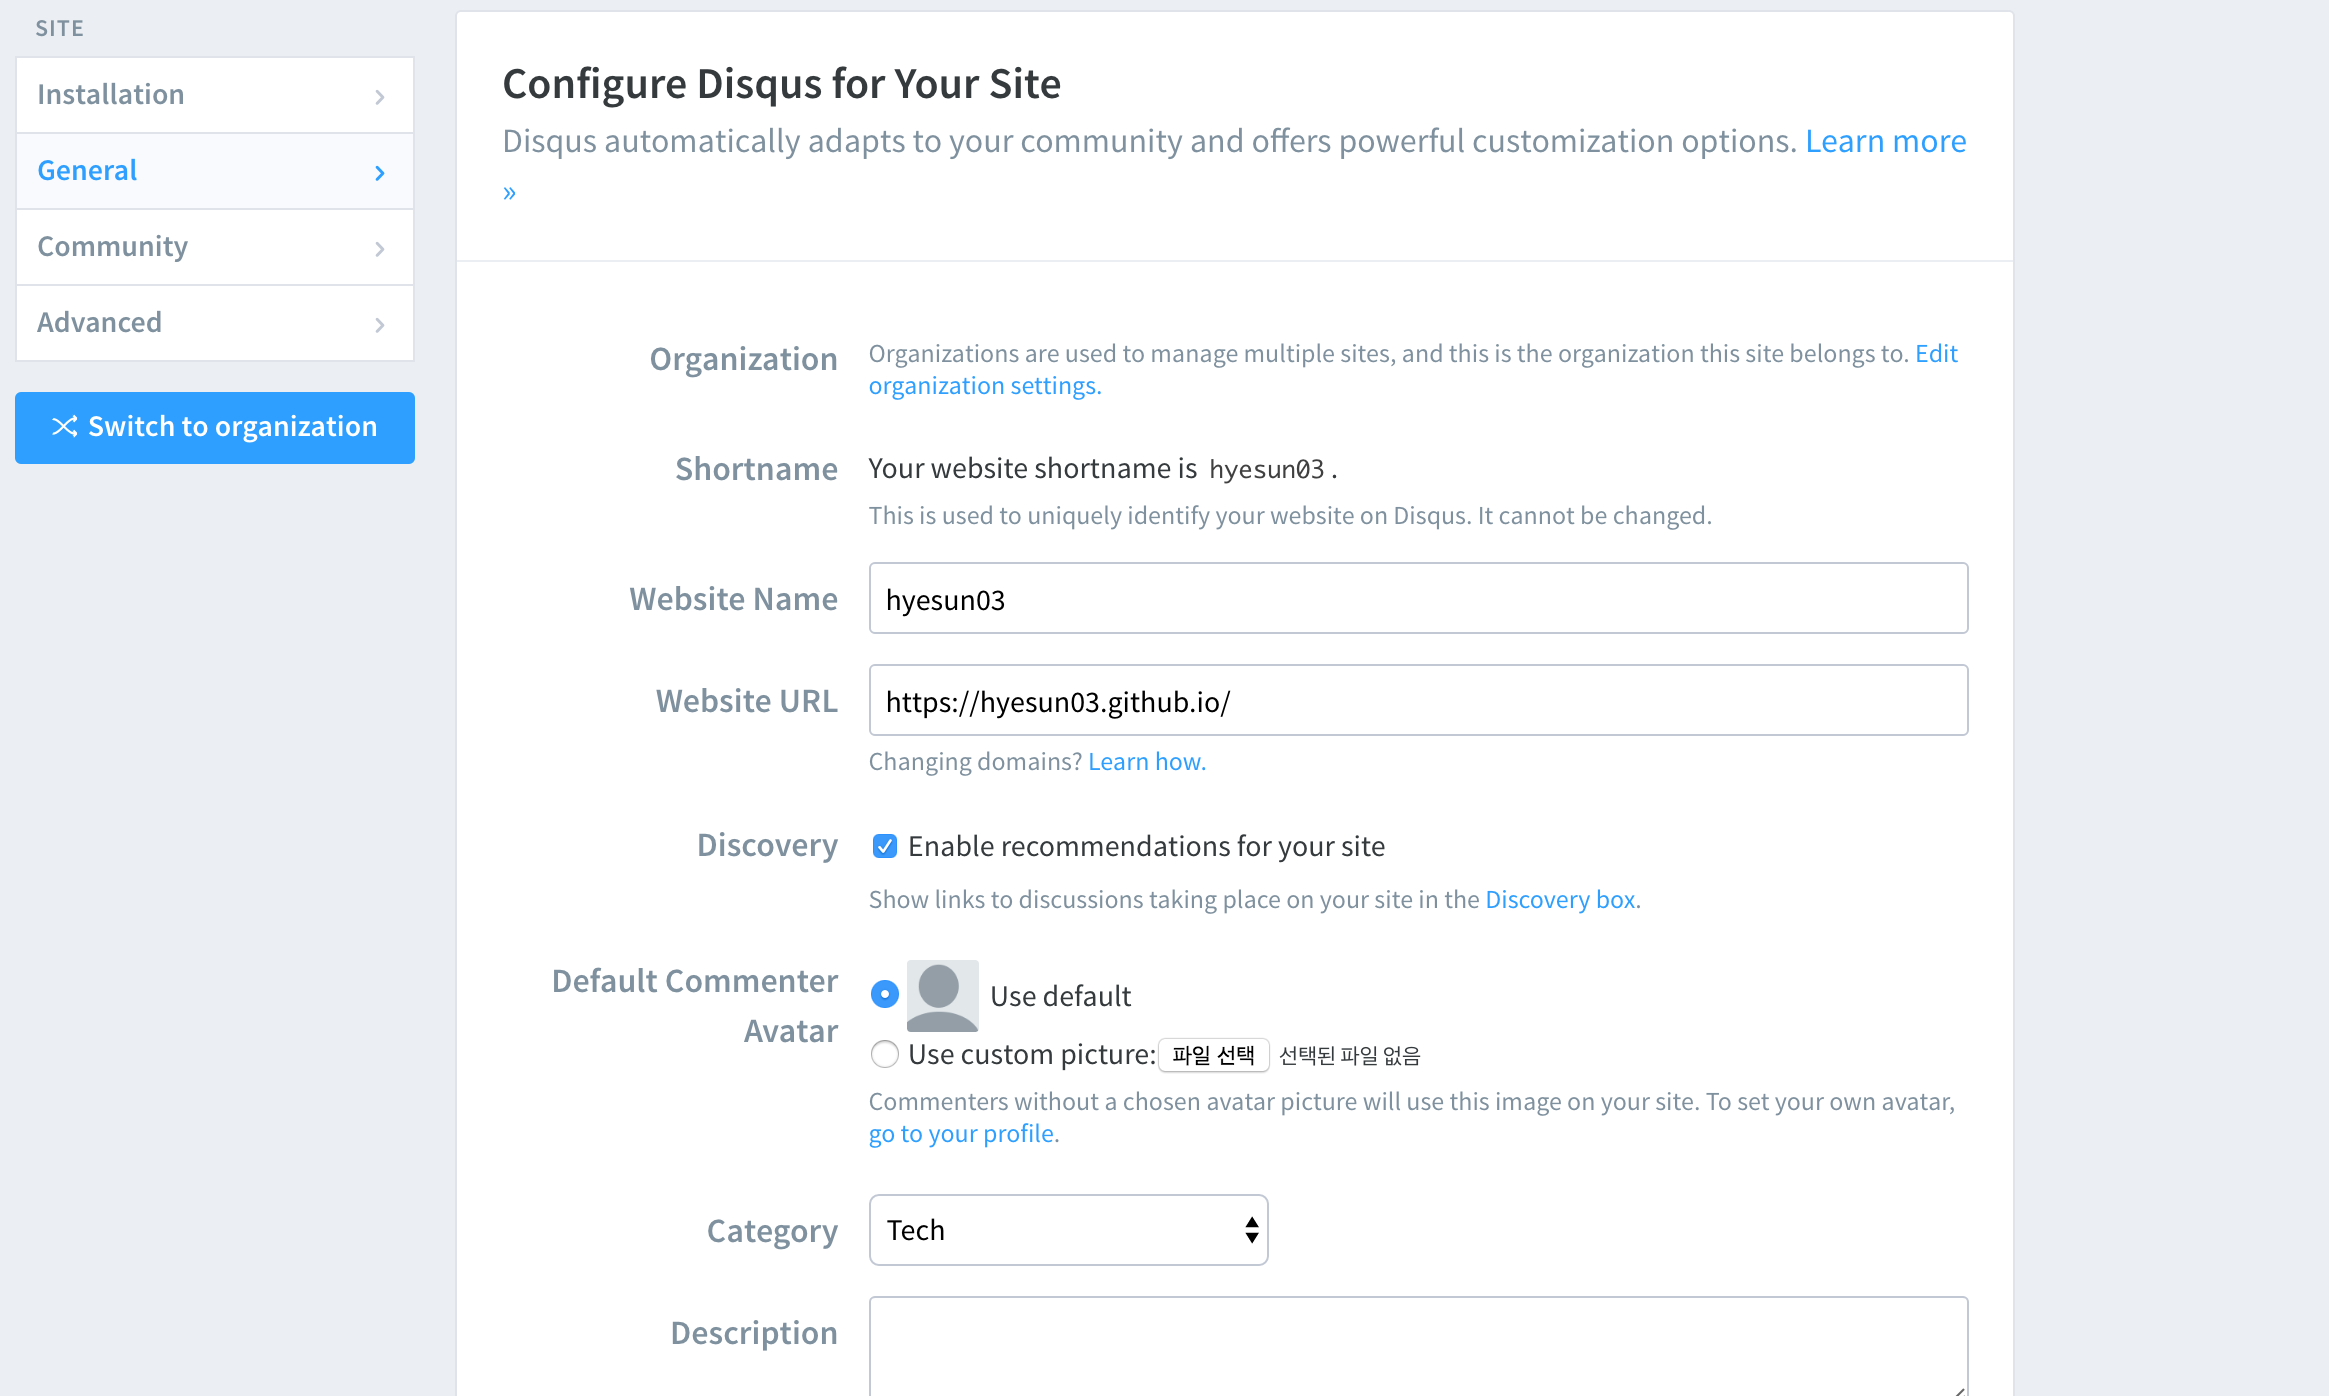 Configure Disqus for Your Site